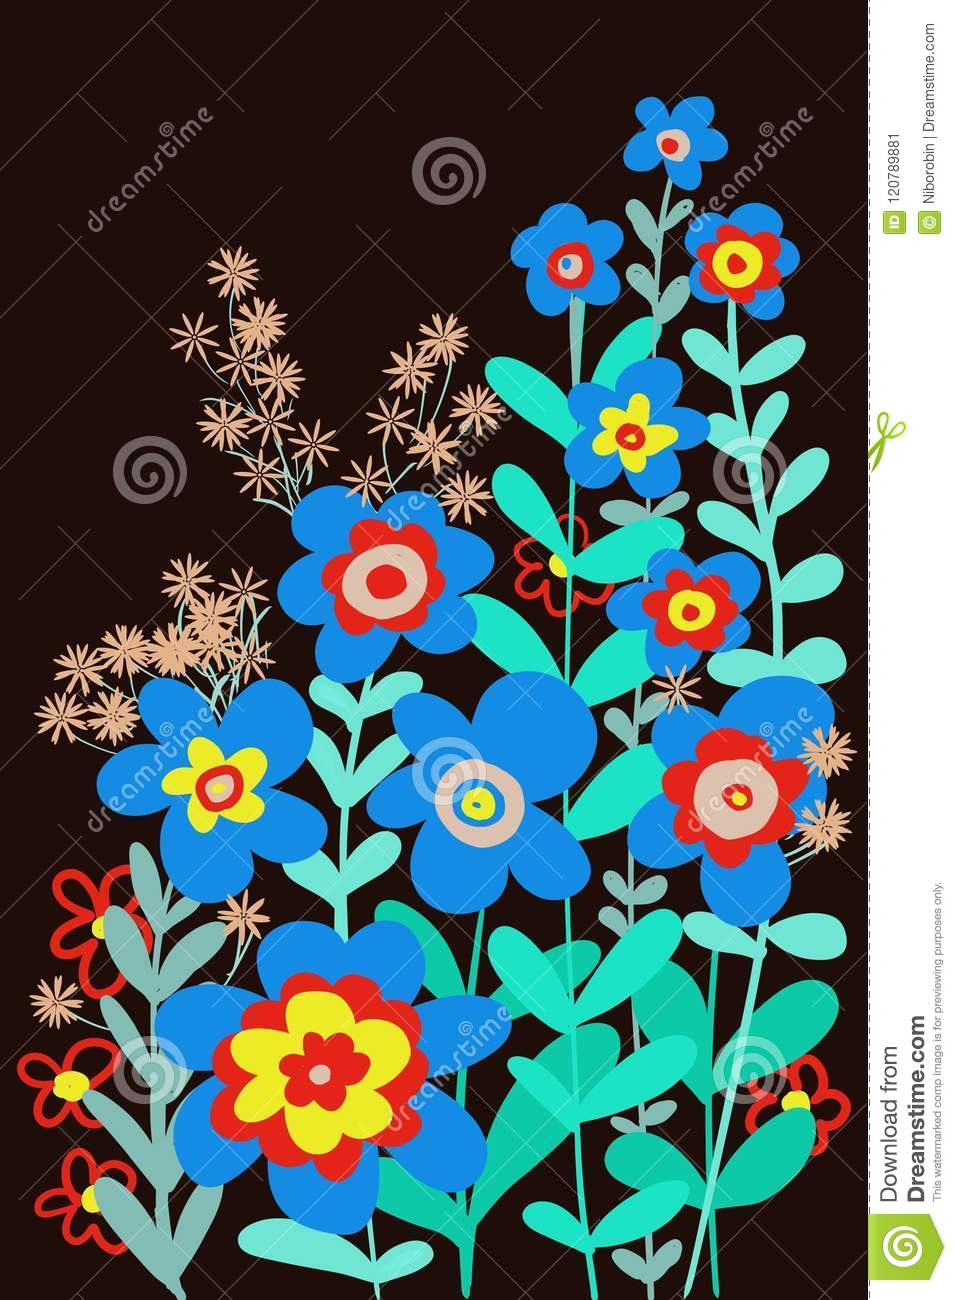 Hand Drawn Flat Floral Cut Paper Look Graphic Design For Covers